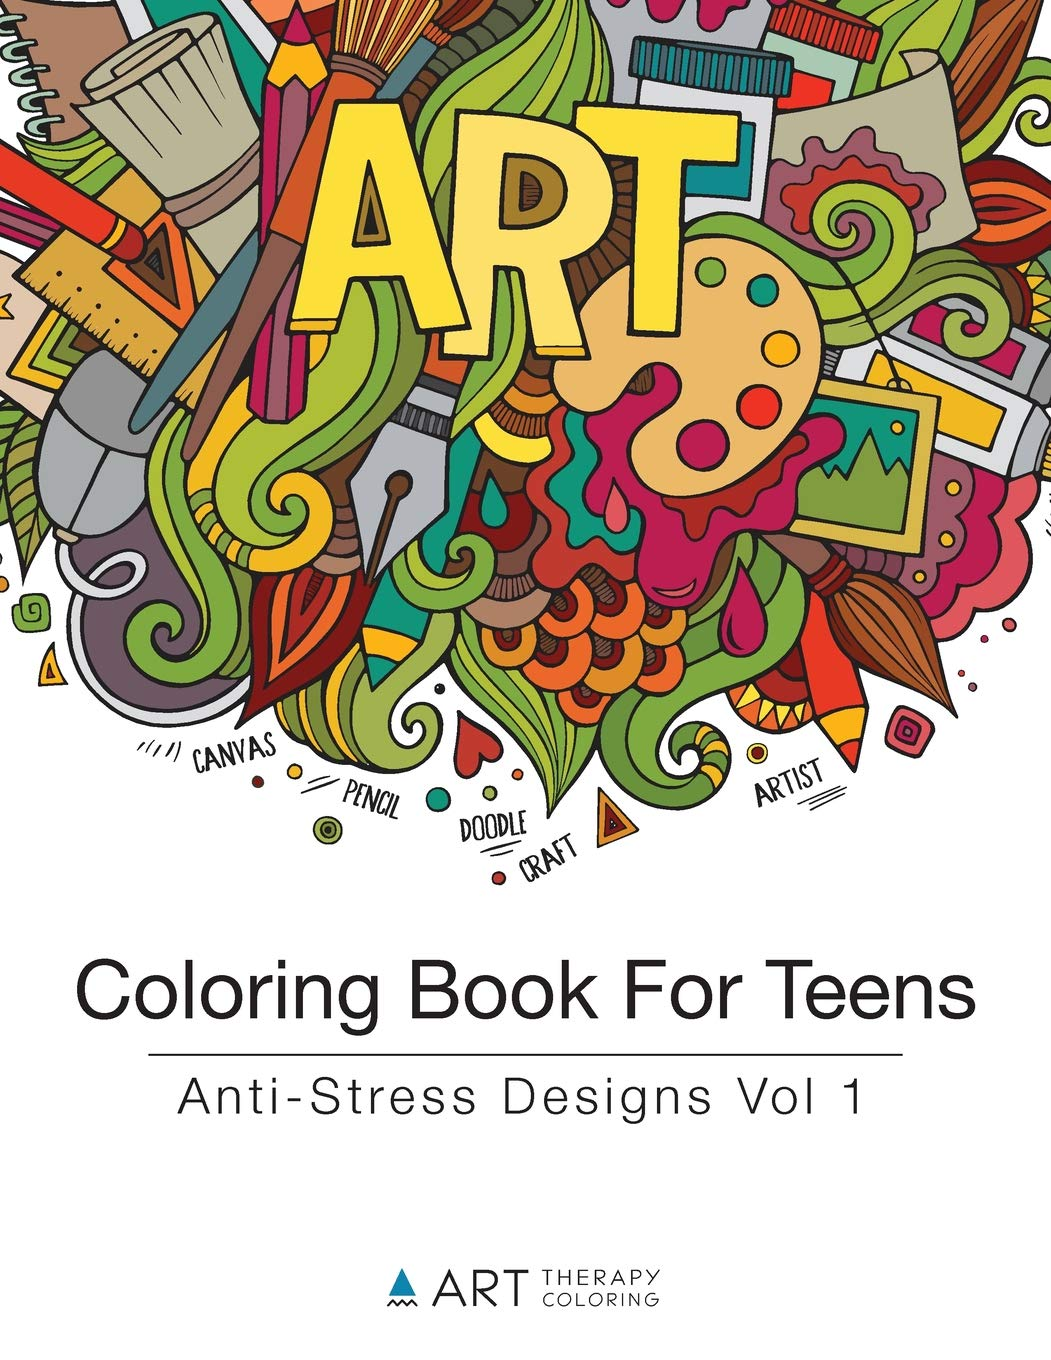 Coloring Book For Teens: Anti-Stress Designs Vol 1 (Coloring Books